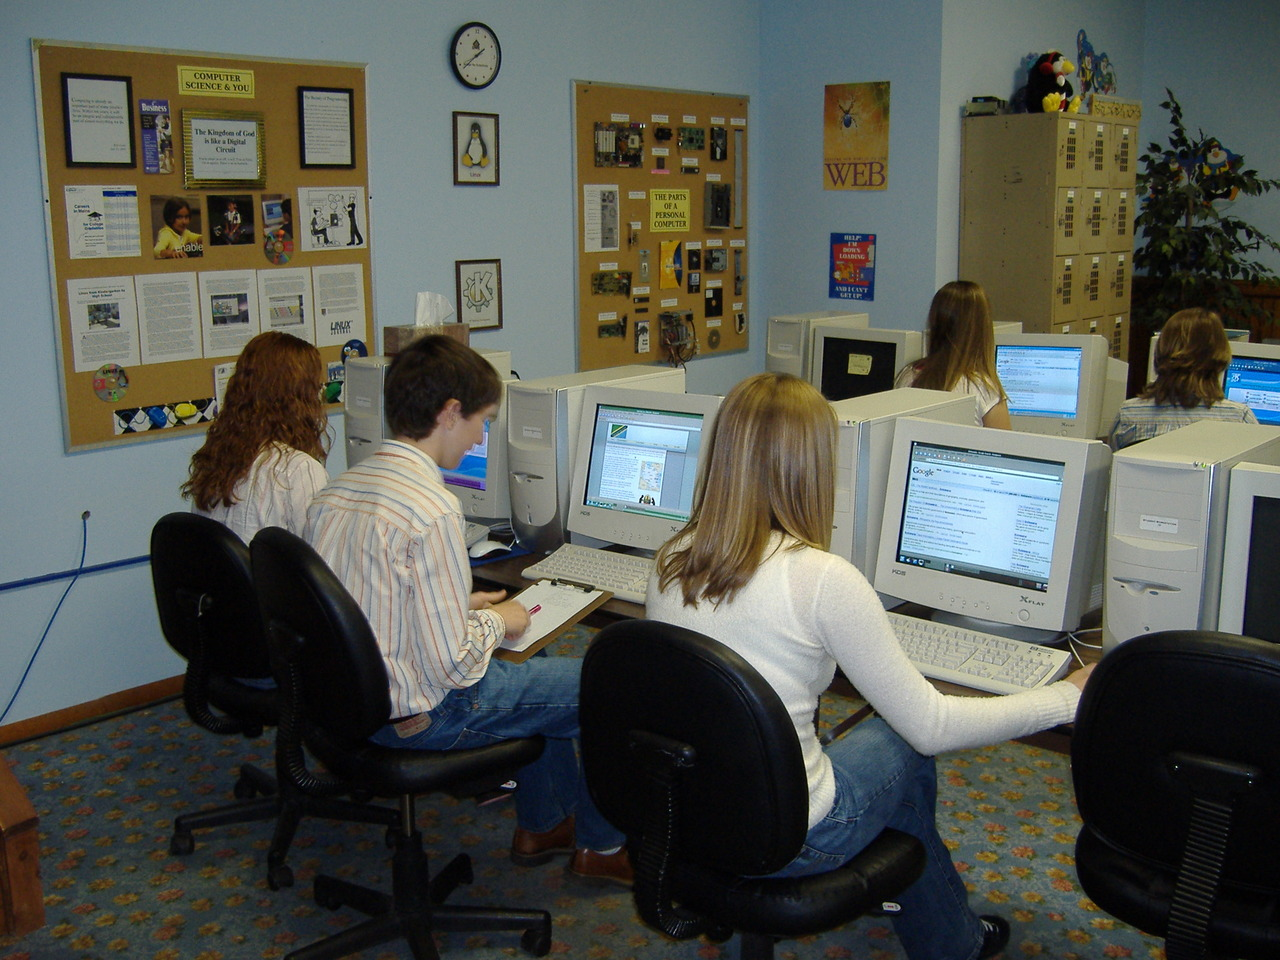 students_working_on_class_assignment_in_computer_lab